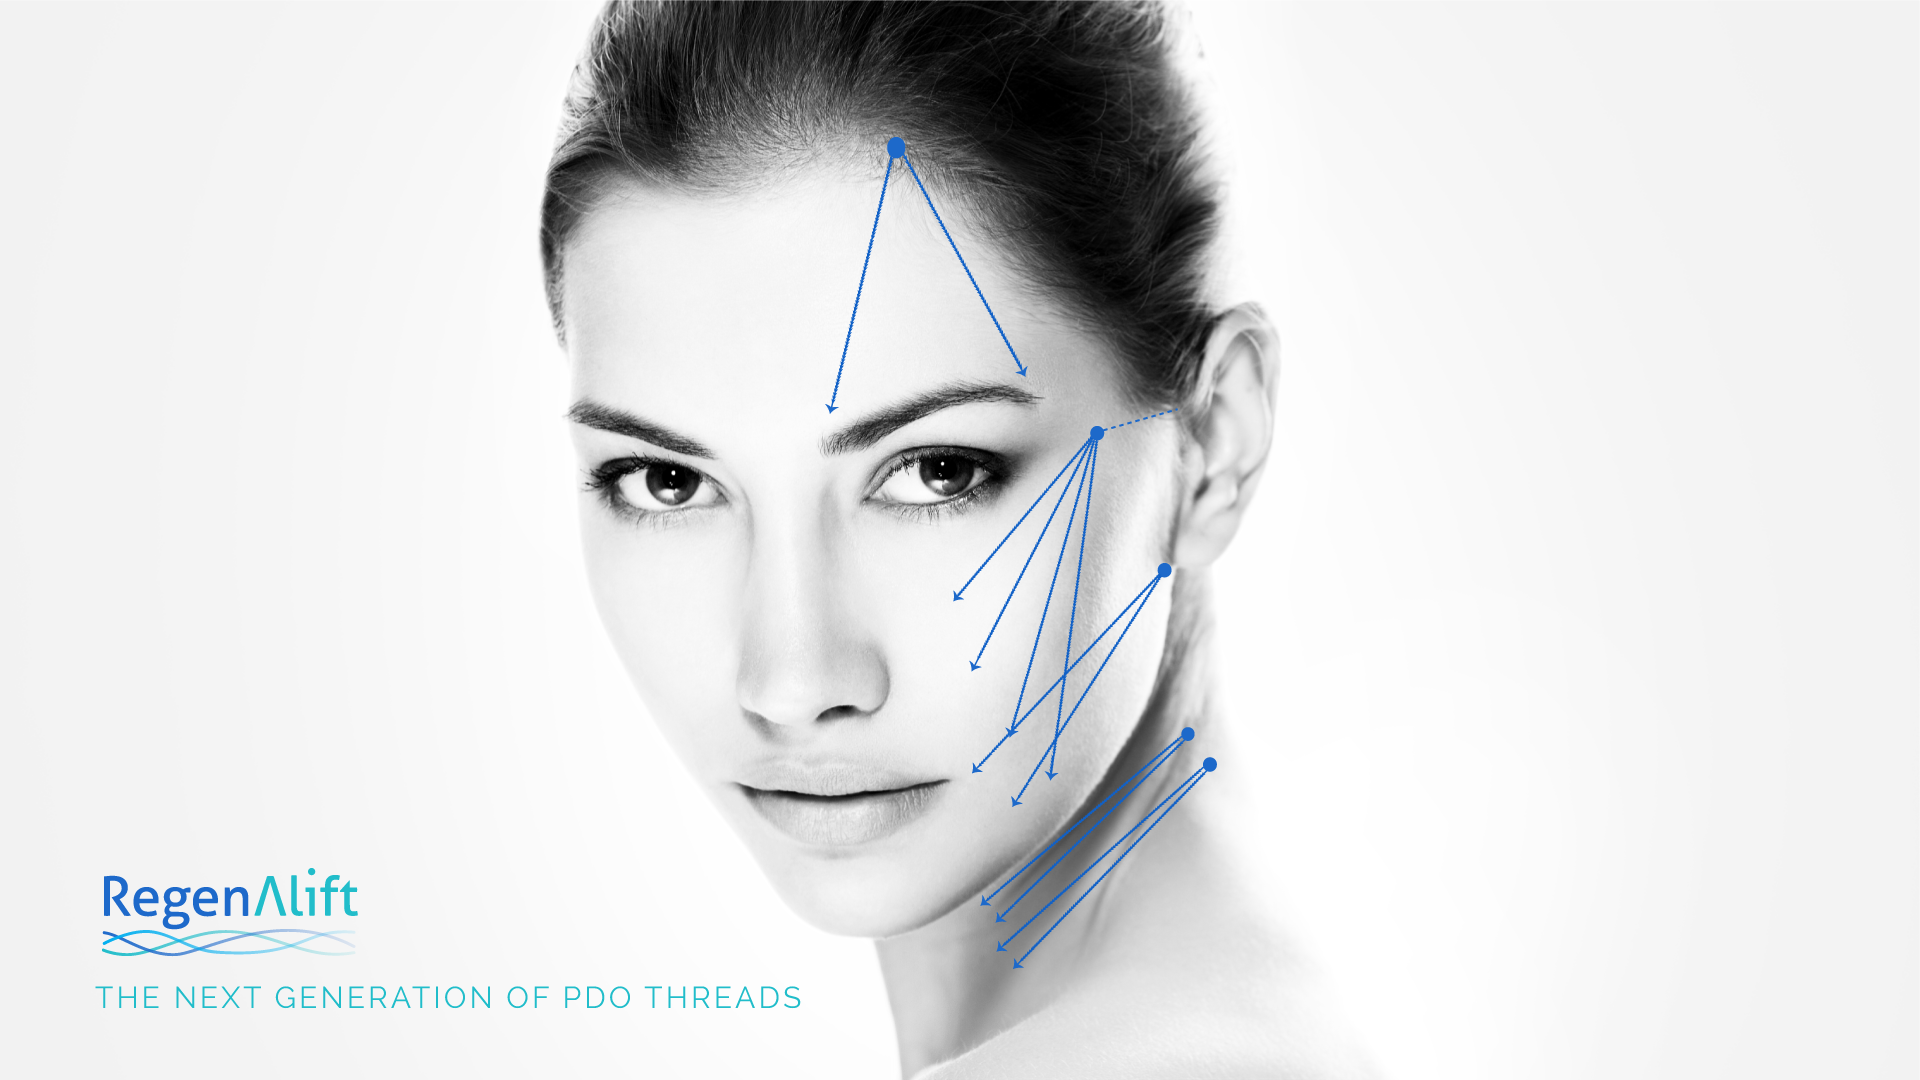 Lifting PDO Threads – visualisation of areas treated with RegenAlift Lifting PDO Threads